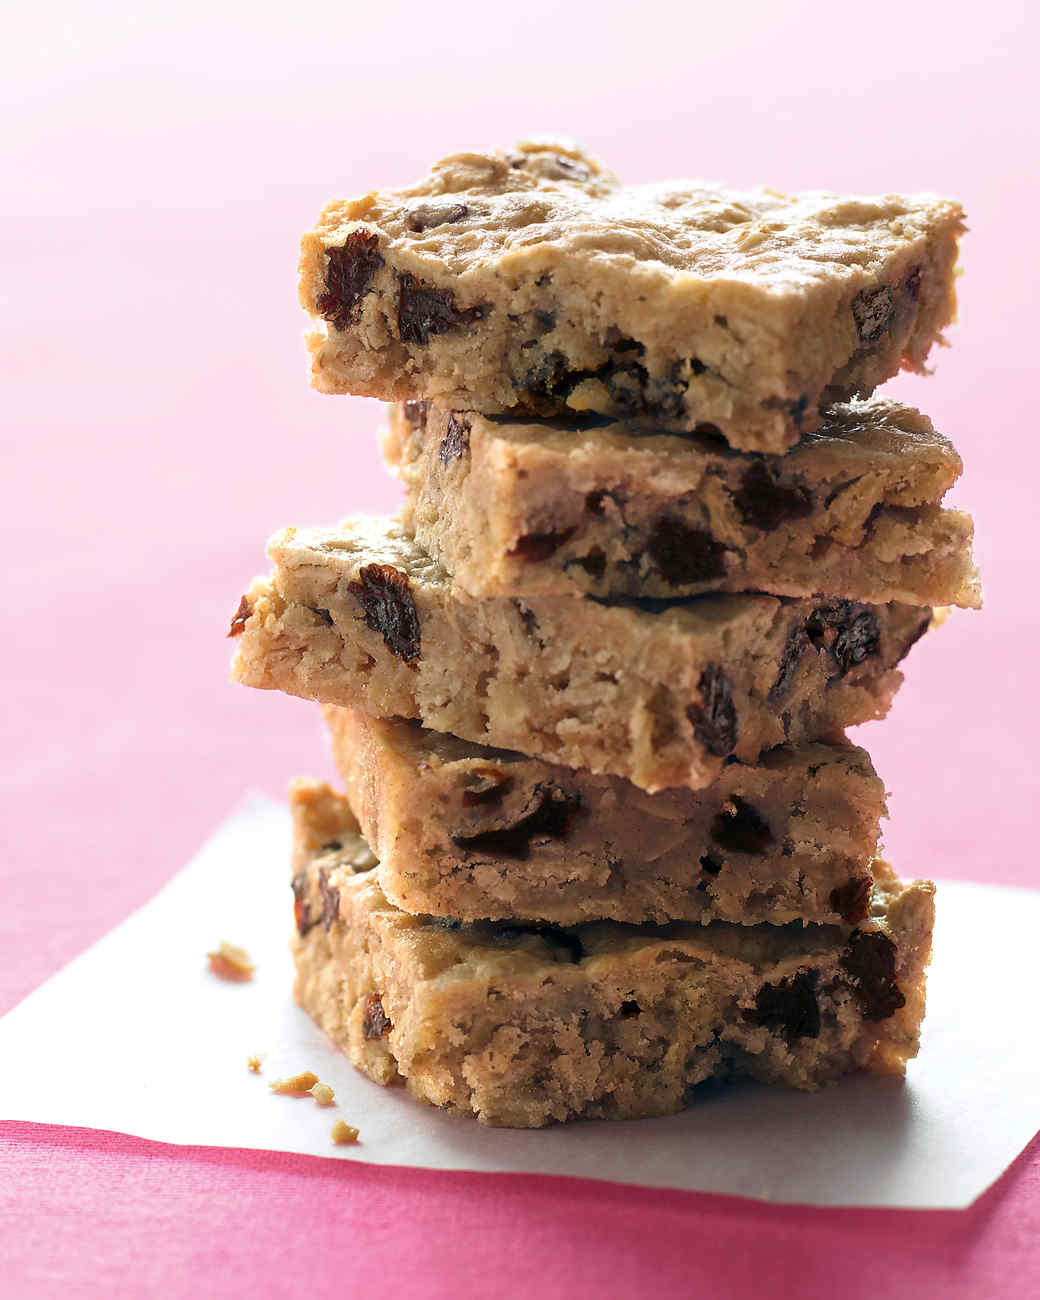 Oatmeal-Raisin Bars